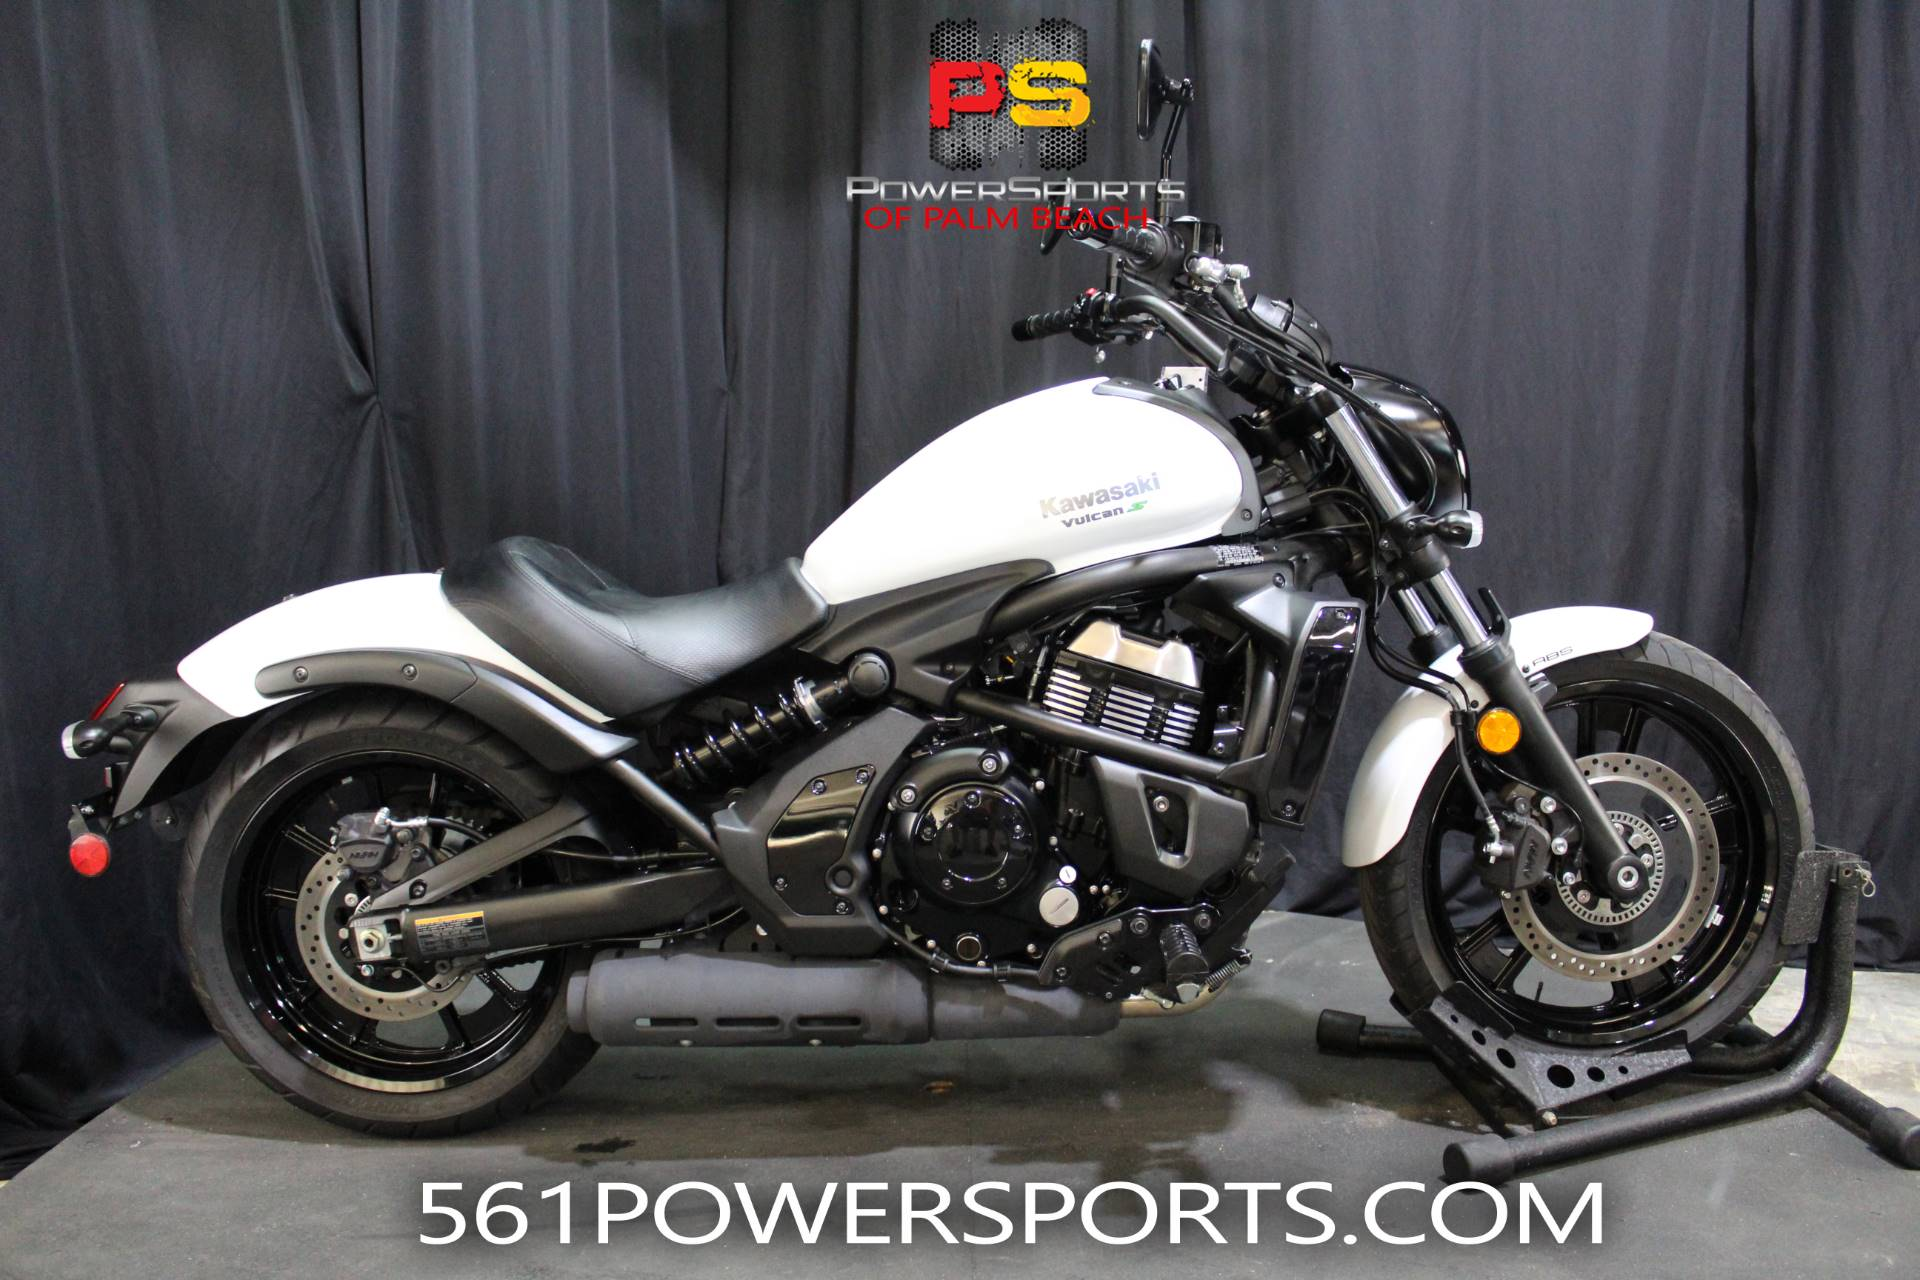 2018 Kawasaki Vulcan S ABS in Lake Park, Florida - Photo 1